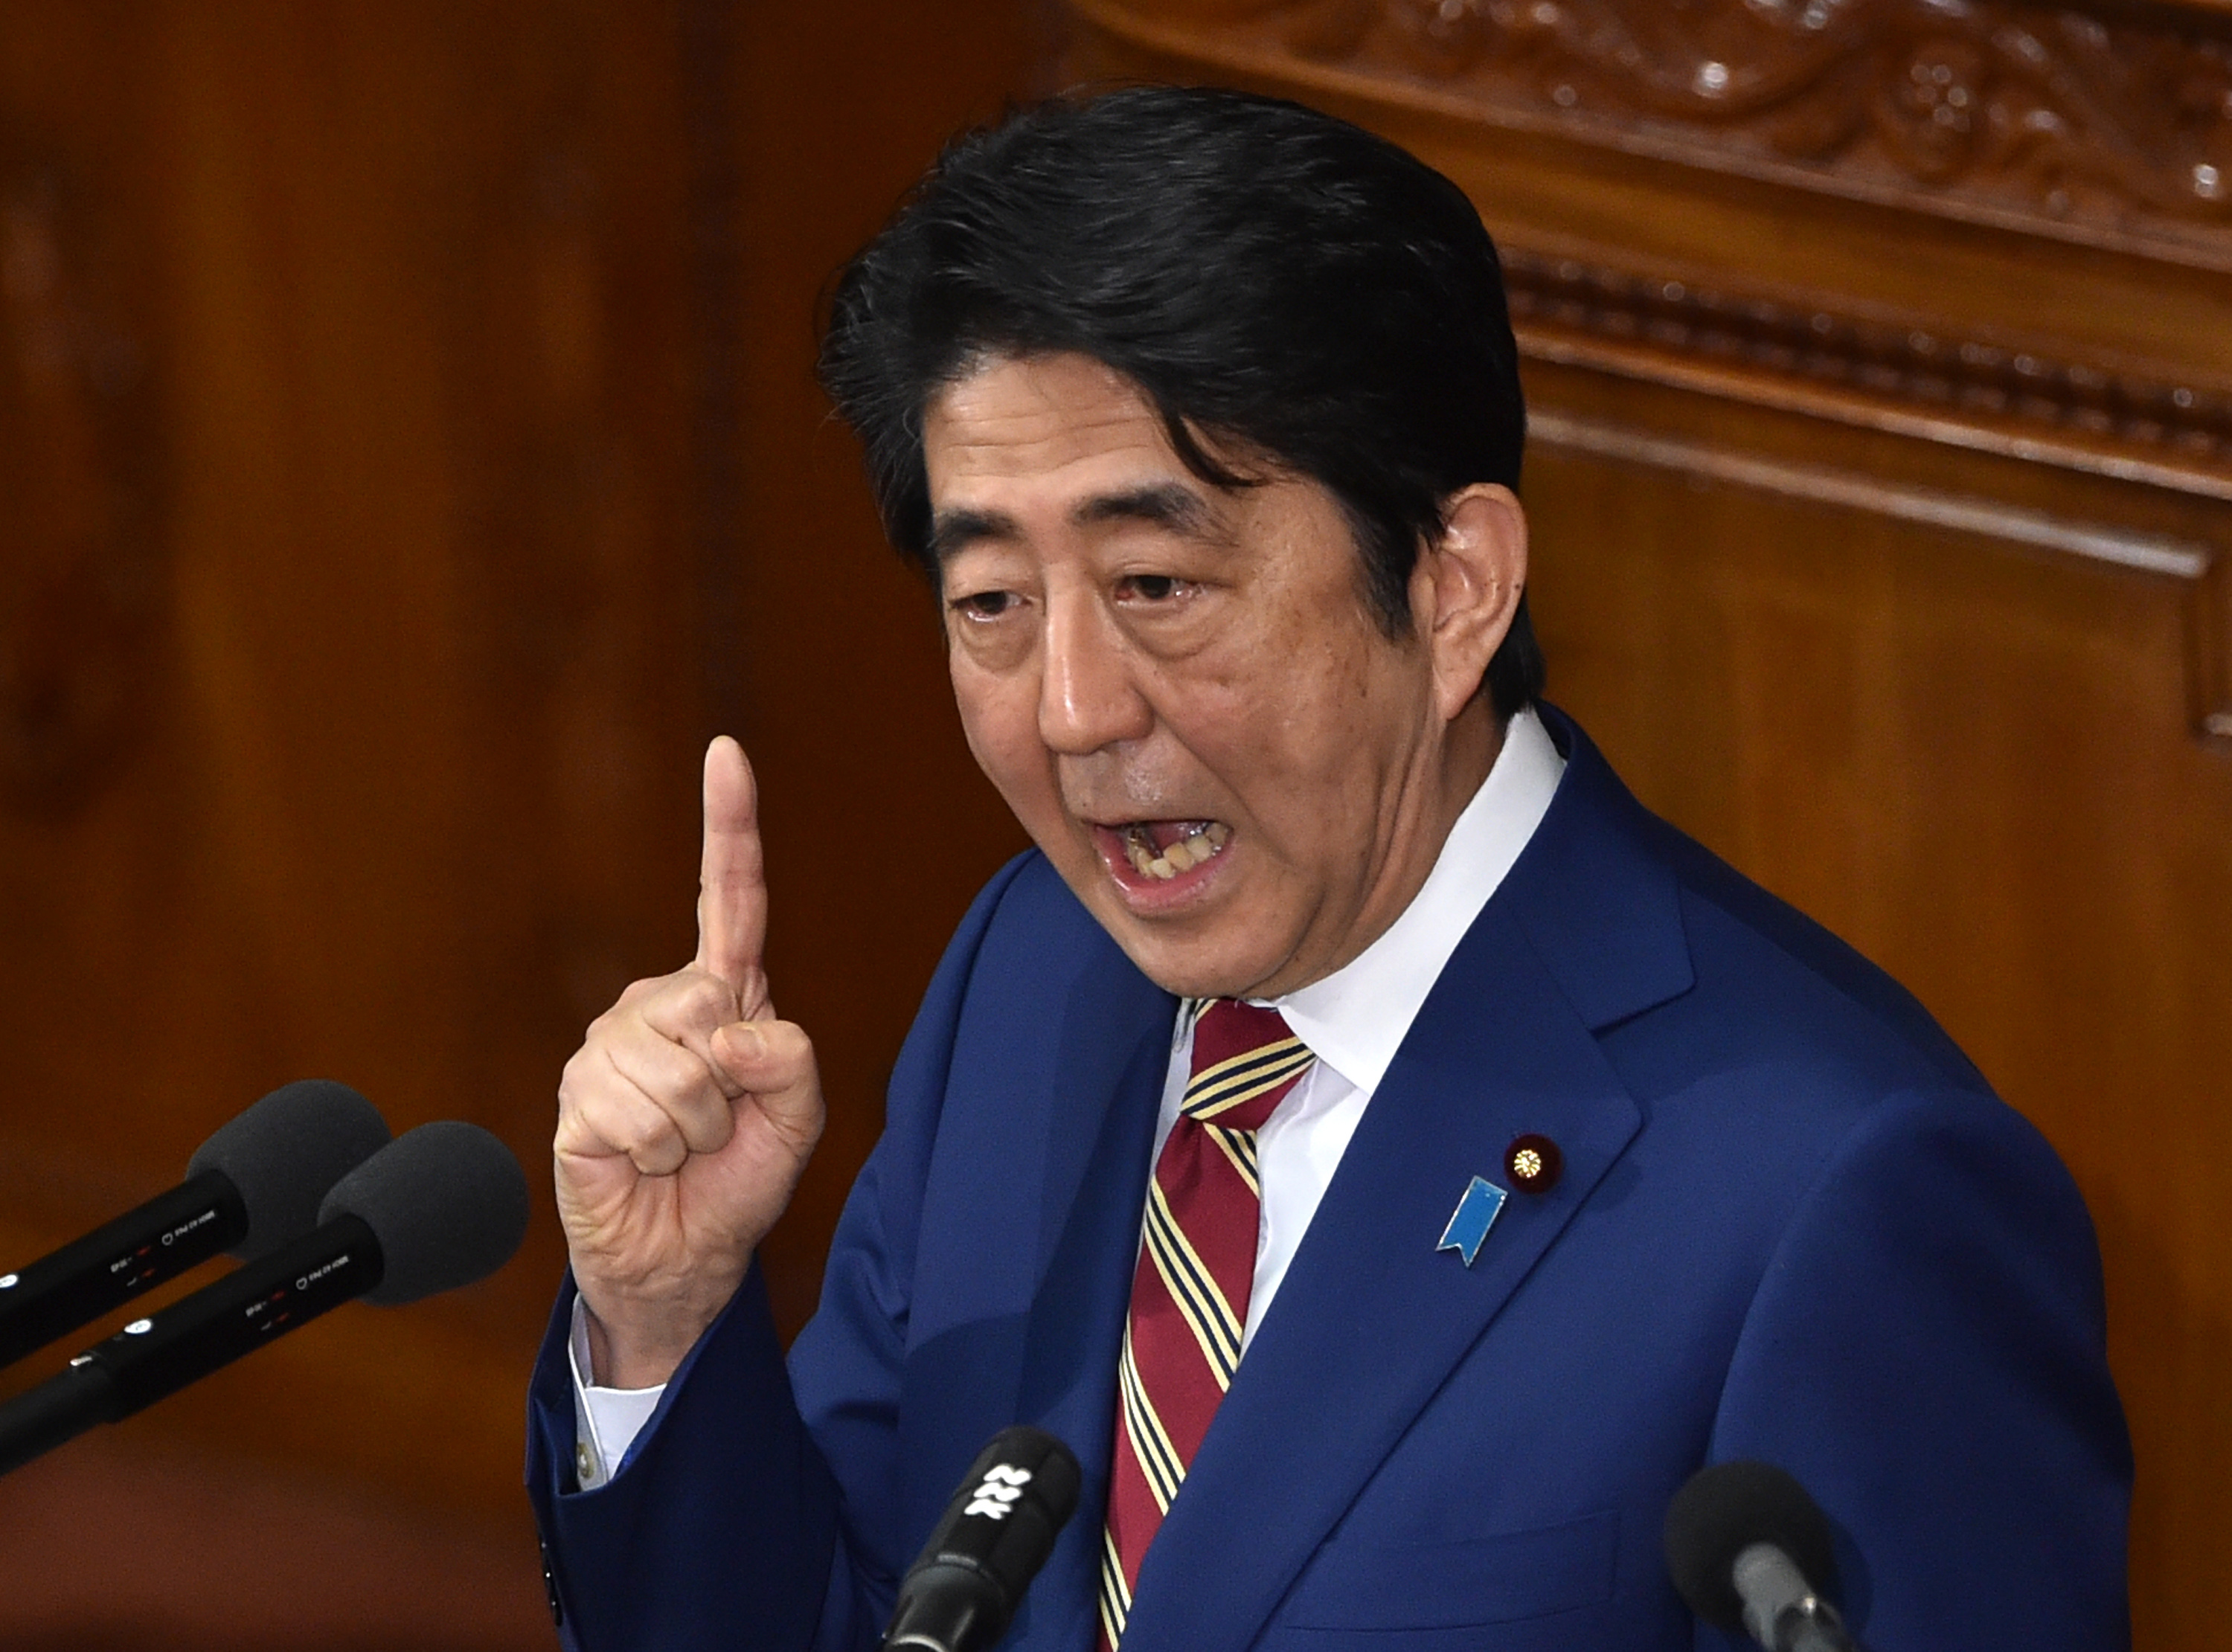 Japanese Prime Minister Shinzo Abe delivers his policy speech during a plenary session of the House of Representatives in Tokyo on Jan. 22, 2016.